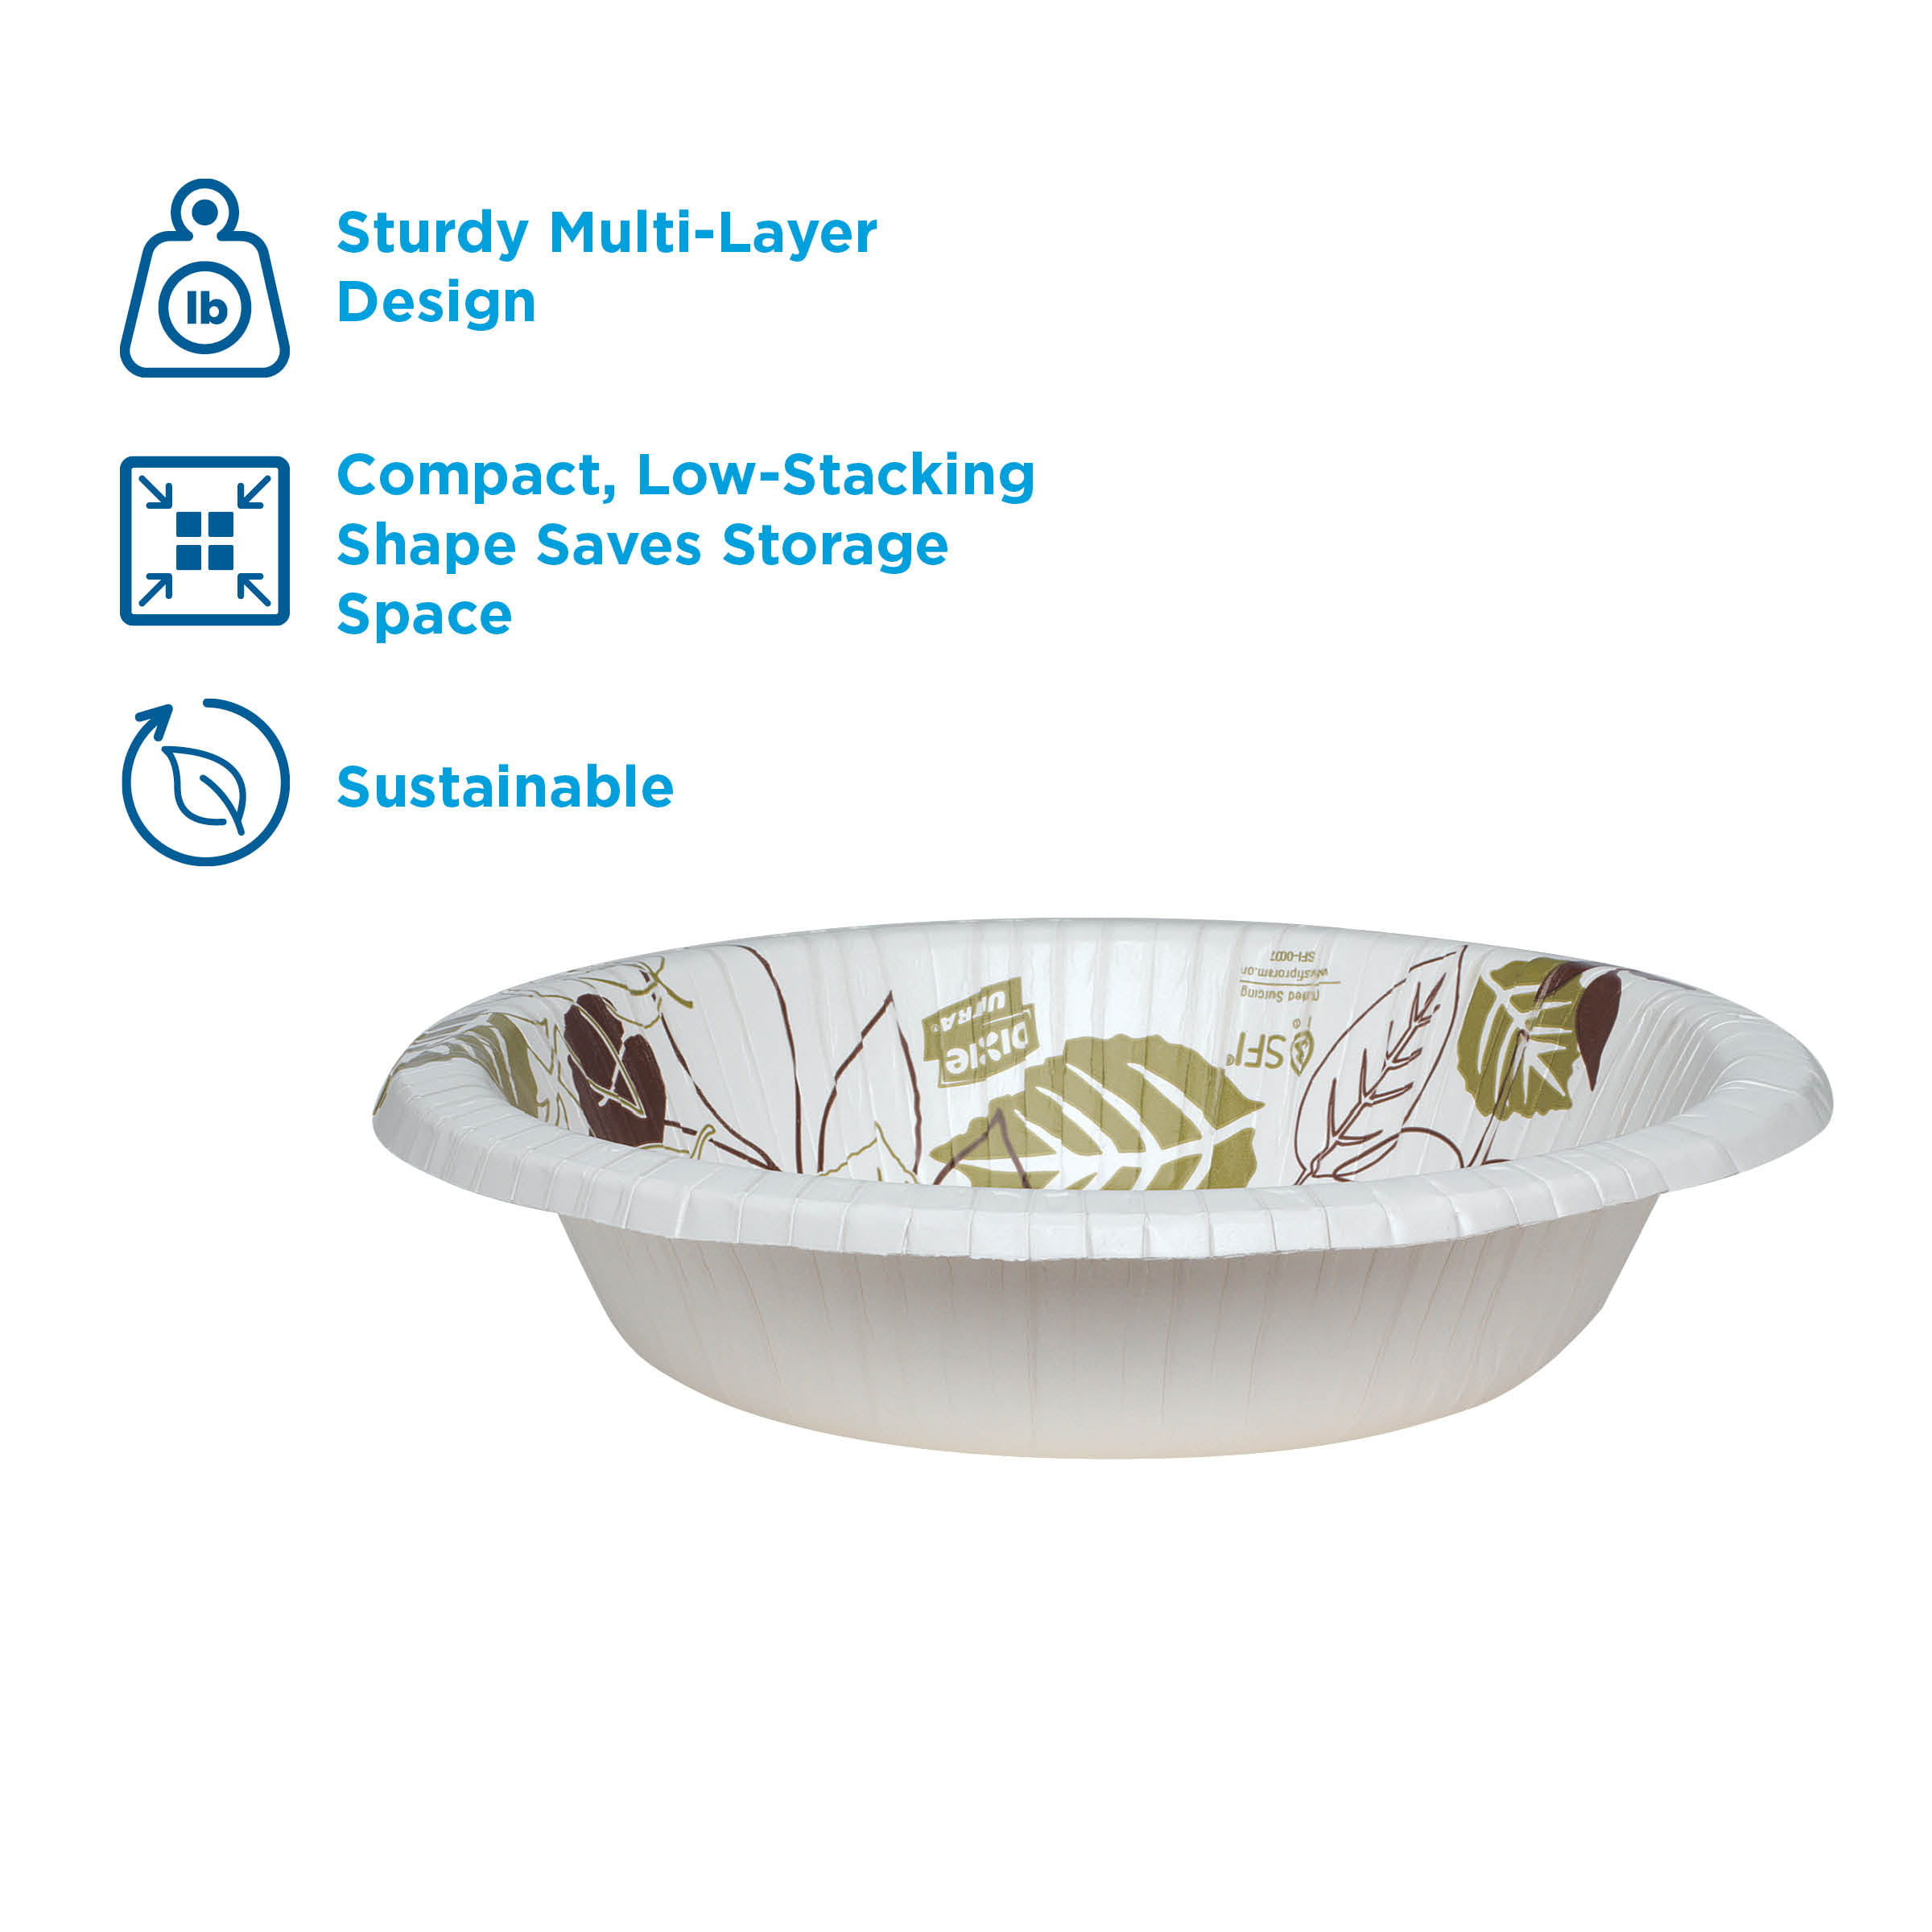 1,000 Count SXB12W 125 Bowls Per Pack, 8 Packs Per Case White Dixie Ultra Heavy-Weight 12 oz Georgia-Pacific Paper Bowl by GP PRO